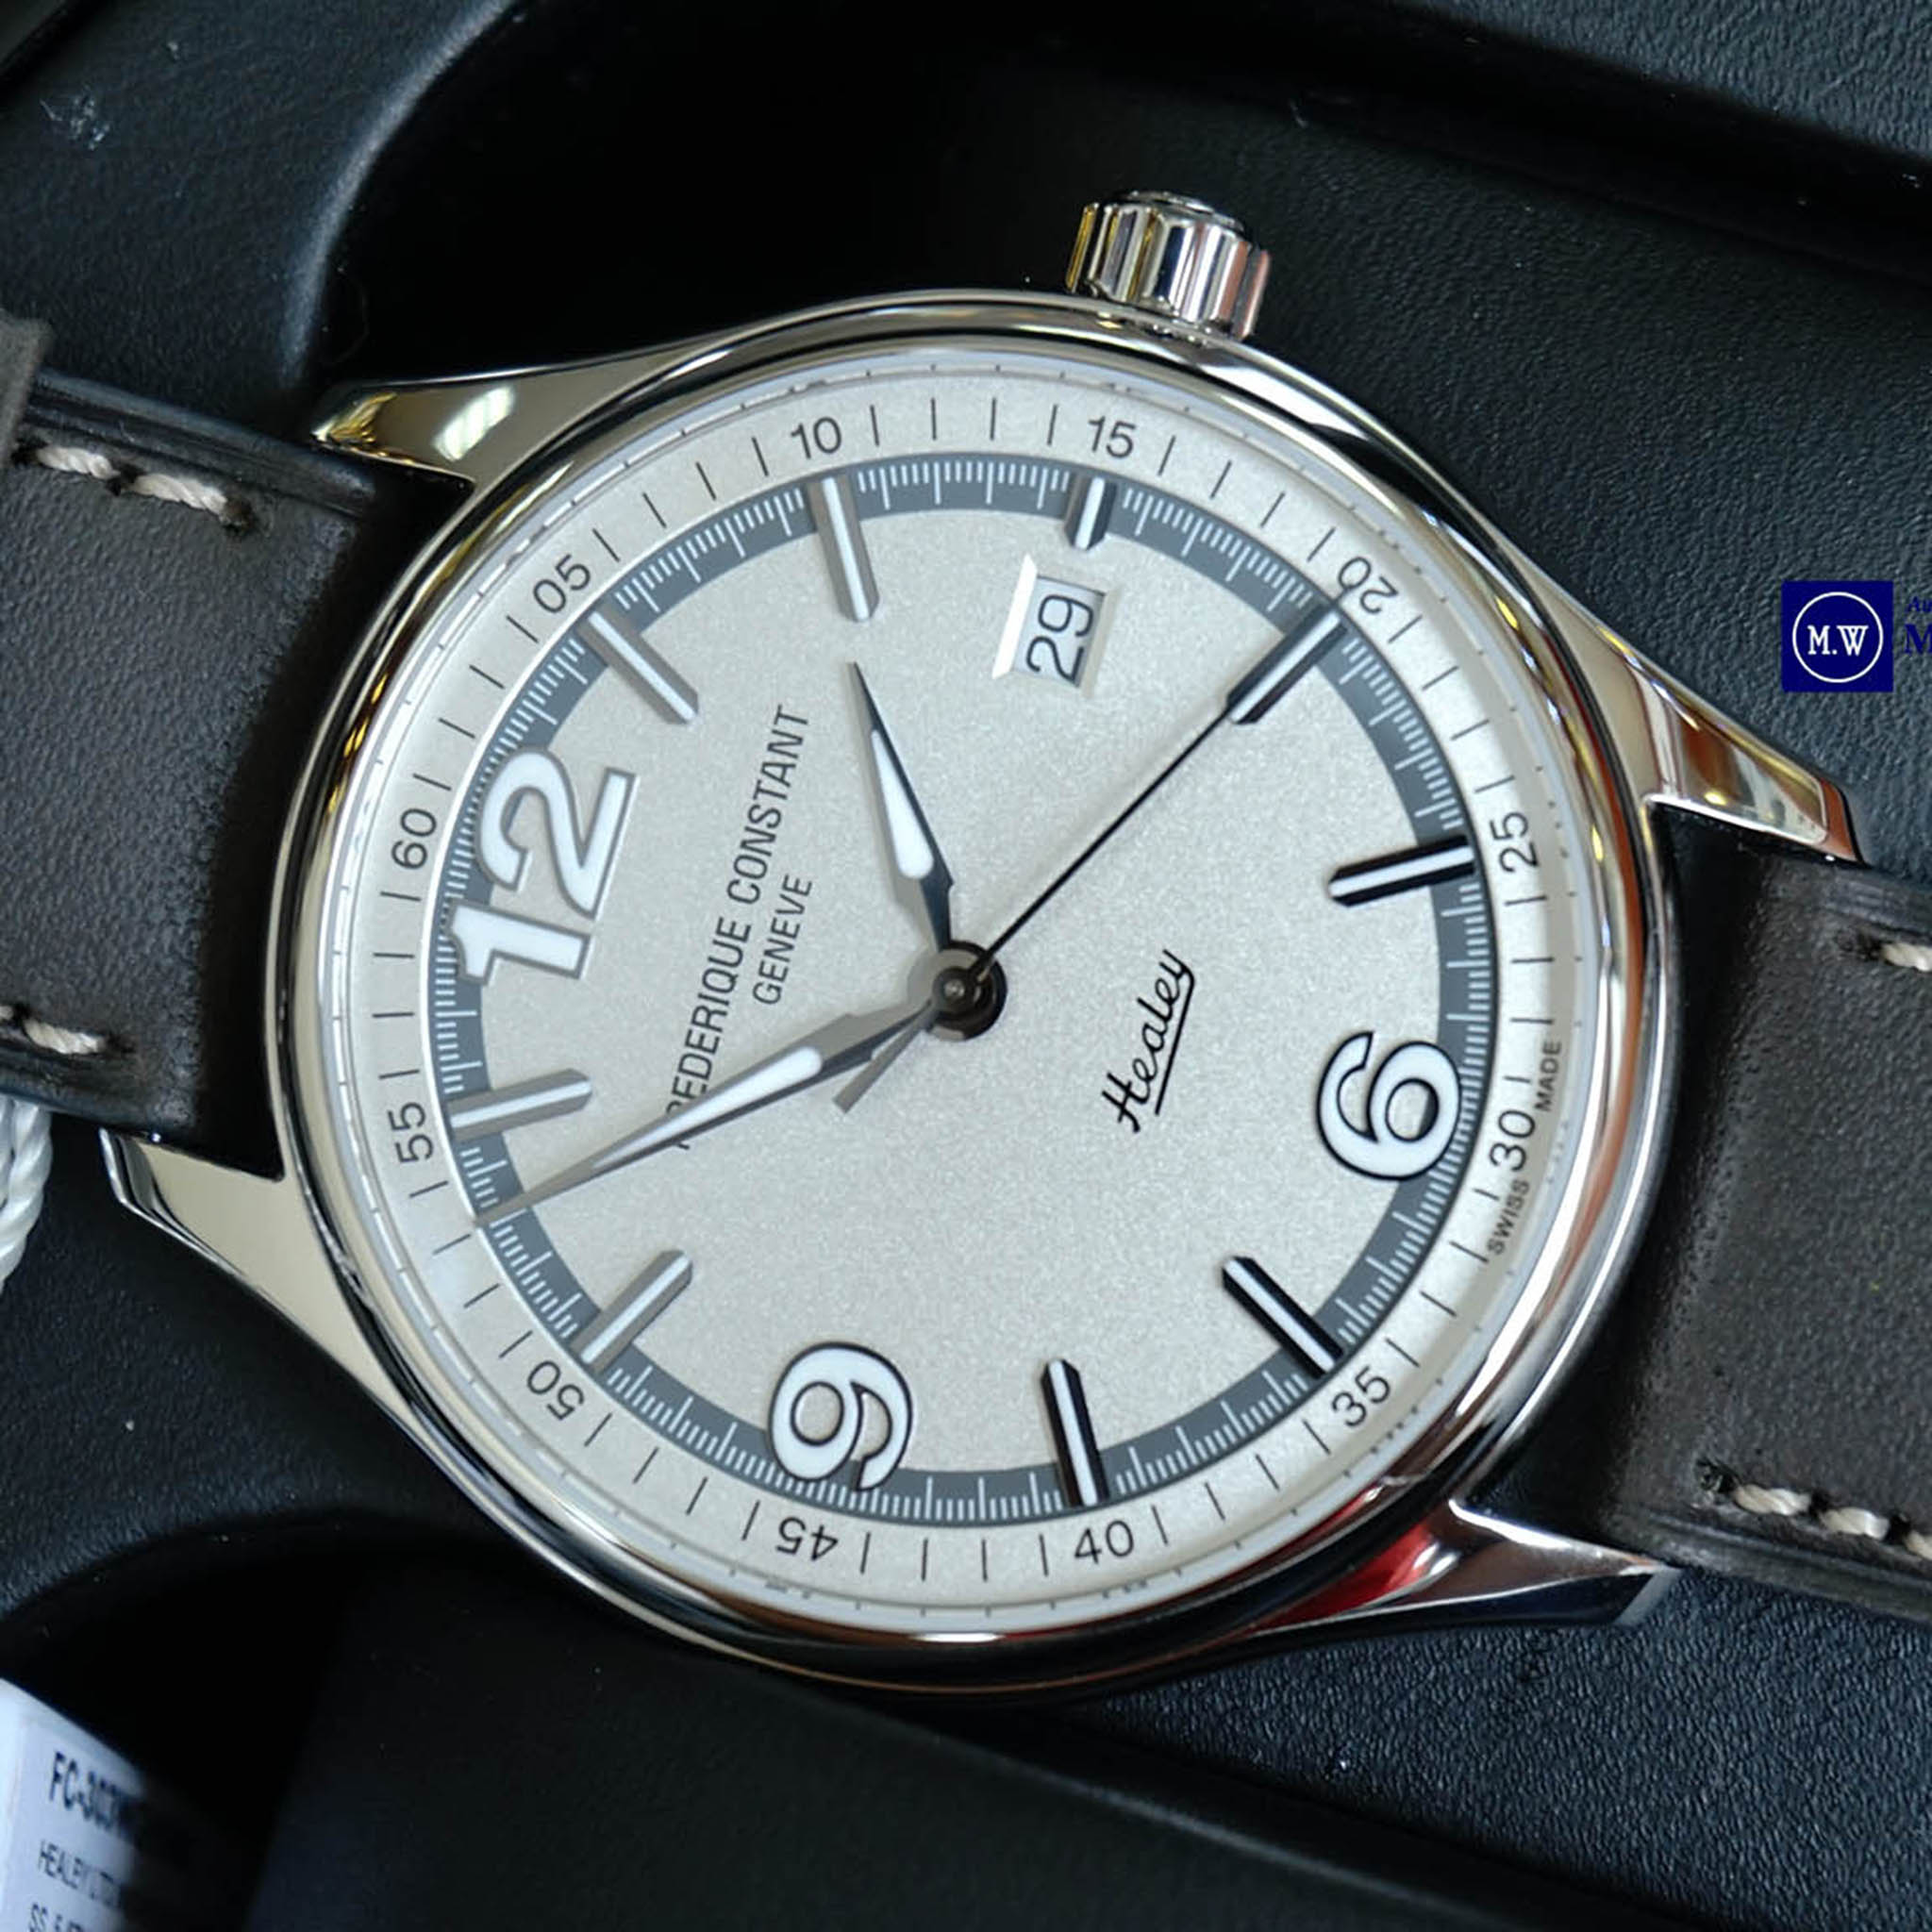 FREDERIQUE CONSTANT VINTAGE RALLY HEALEY LIMITED 2888 SWISS AUTOMATIC FC-303WGH5B6 - Thép không gỉ cao cấp